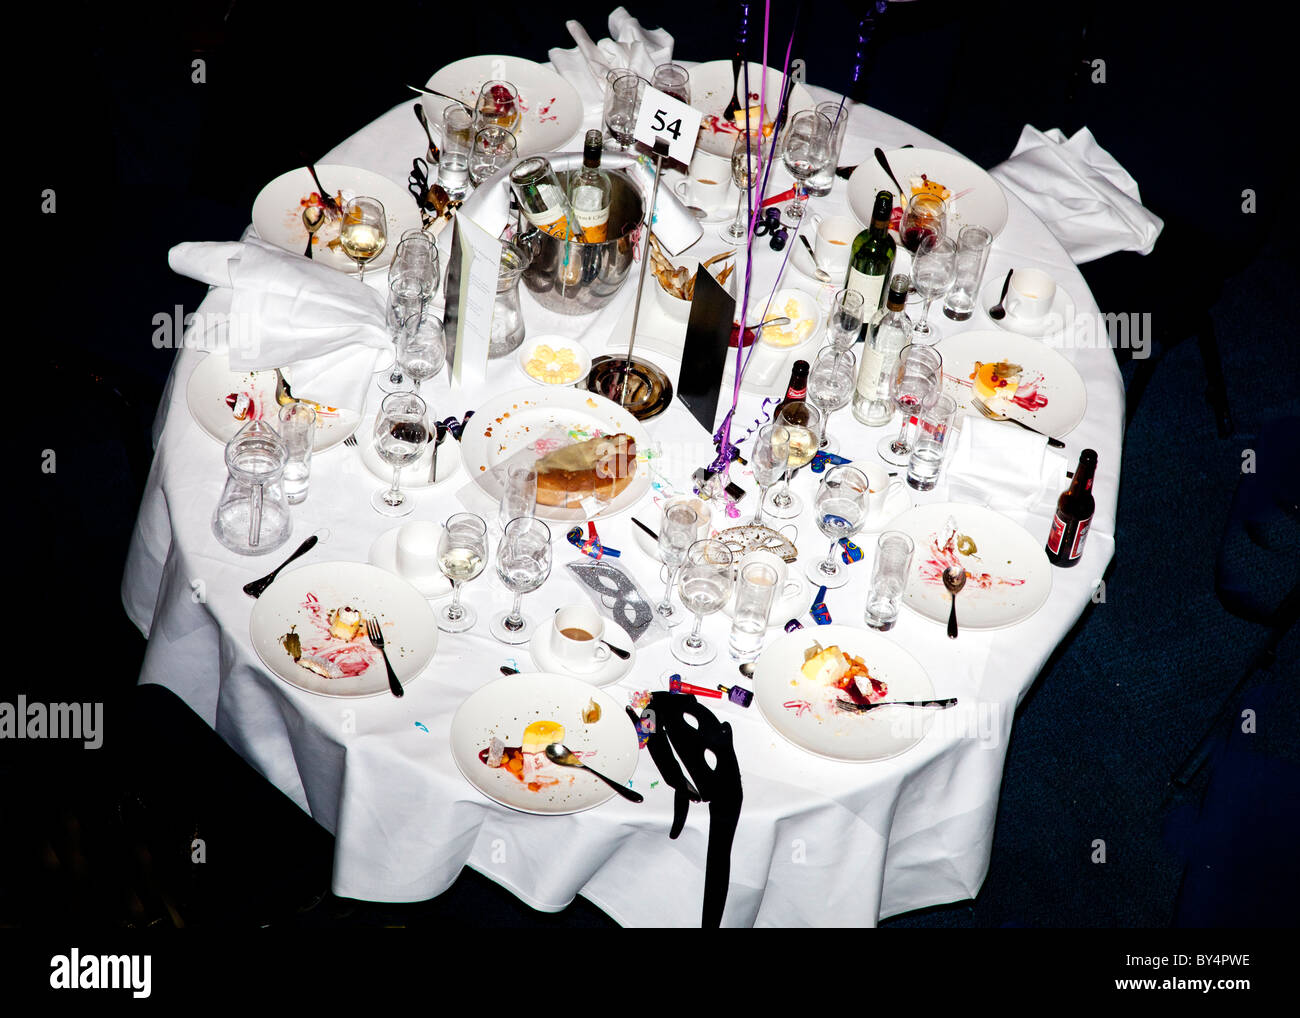 The morning after. A dinner table covered in the after effects of a party. - Stock Image